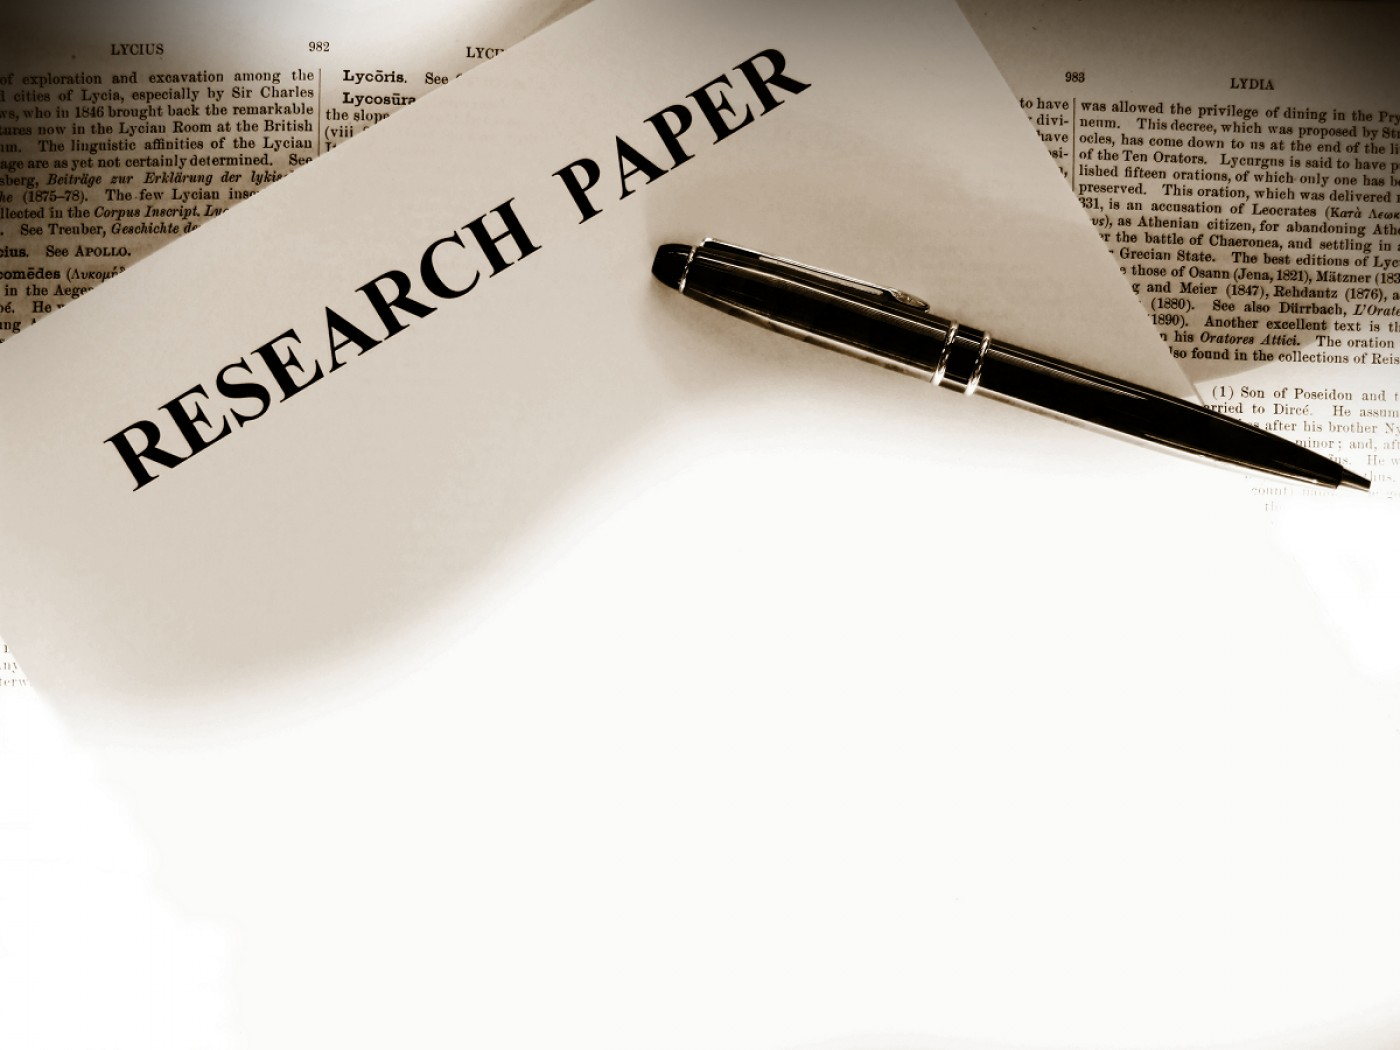 019 Research Papers Writing Paper Help Fascinating Best Services In India Benefits Style 1400